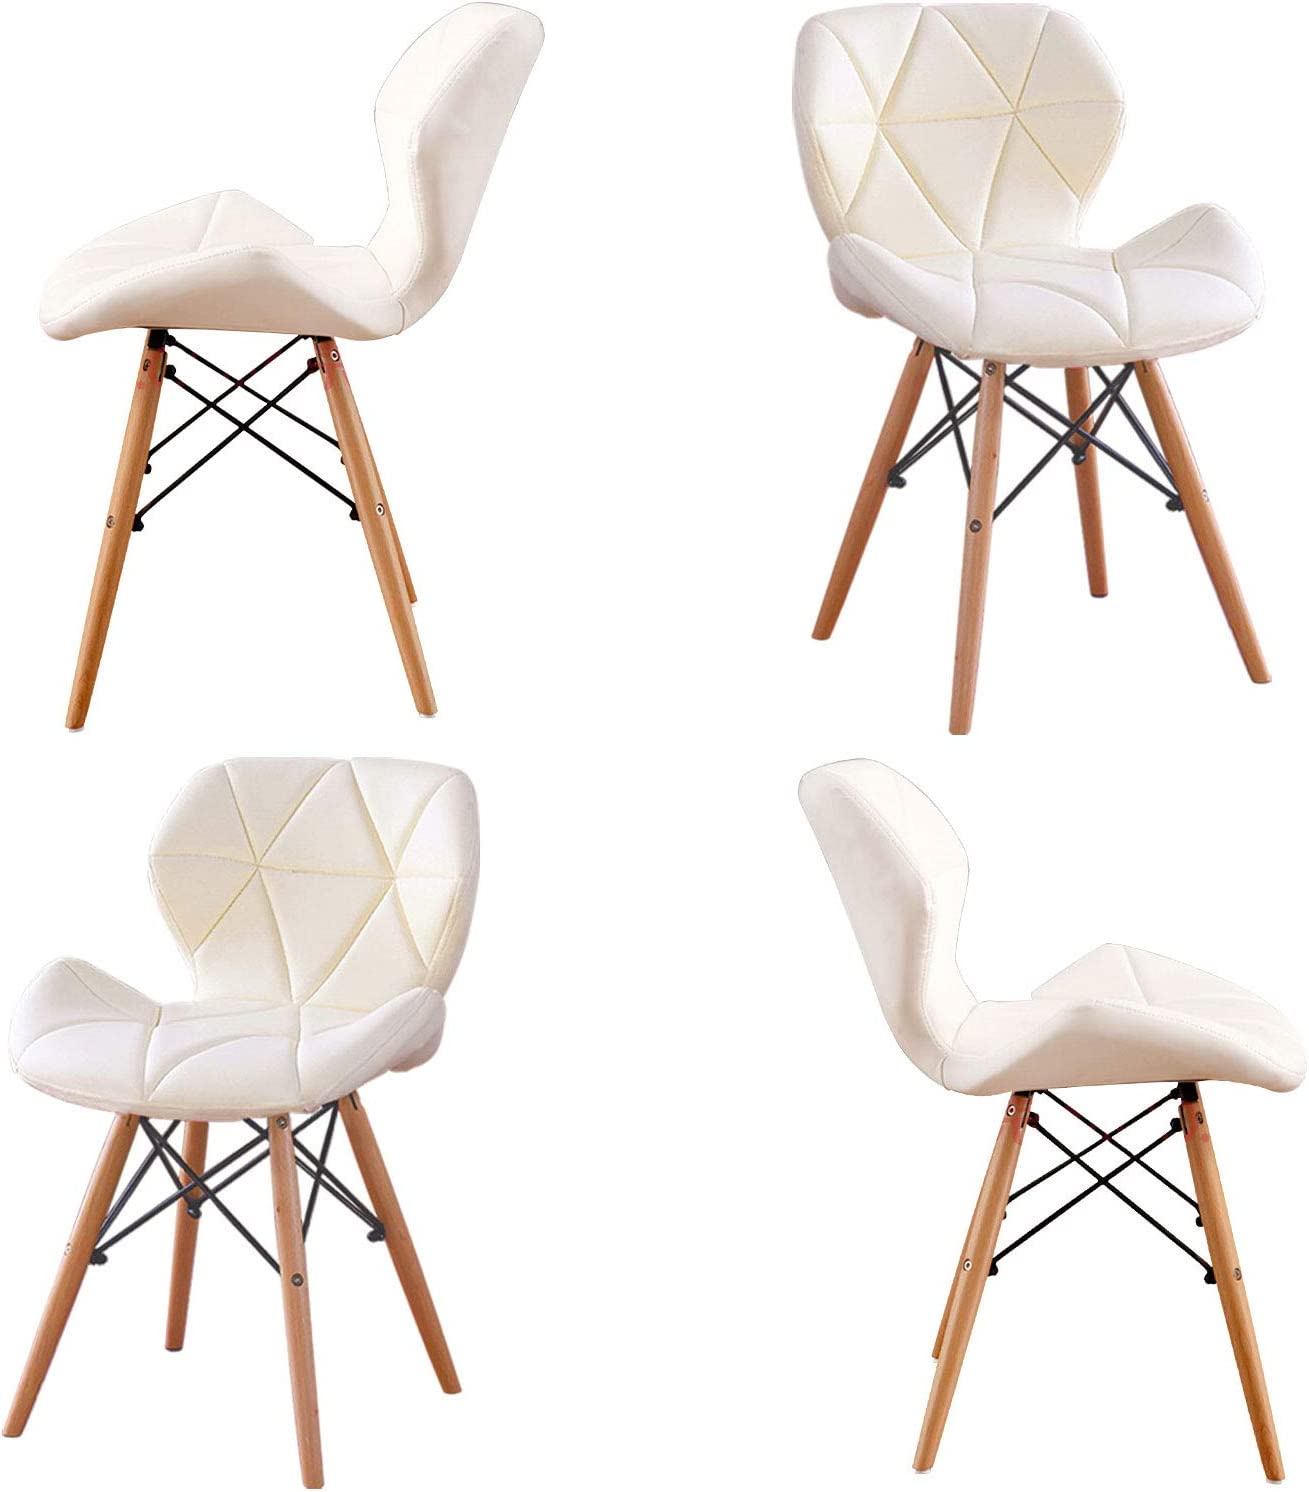 Home Office Dining Chairs Set 4,Modern Chairs of Soft Leathe with Wooden Legs,Black Comfortable Padded Seat Office Chairs